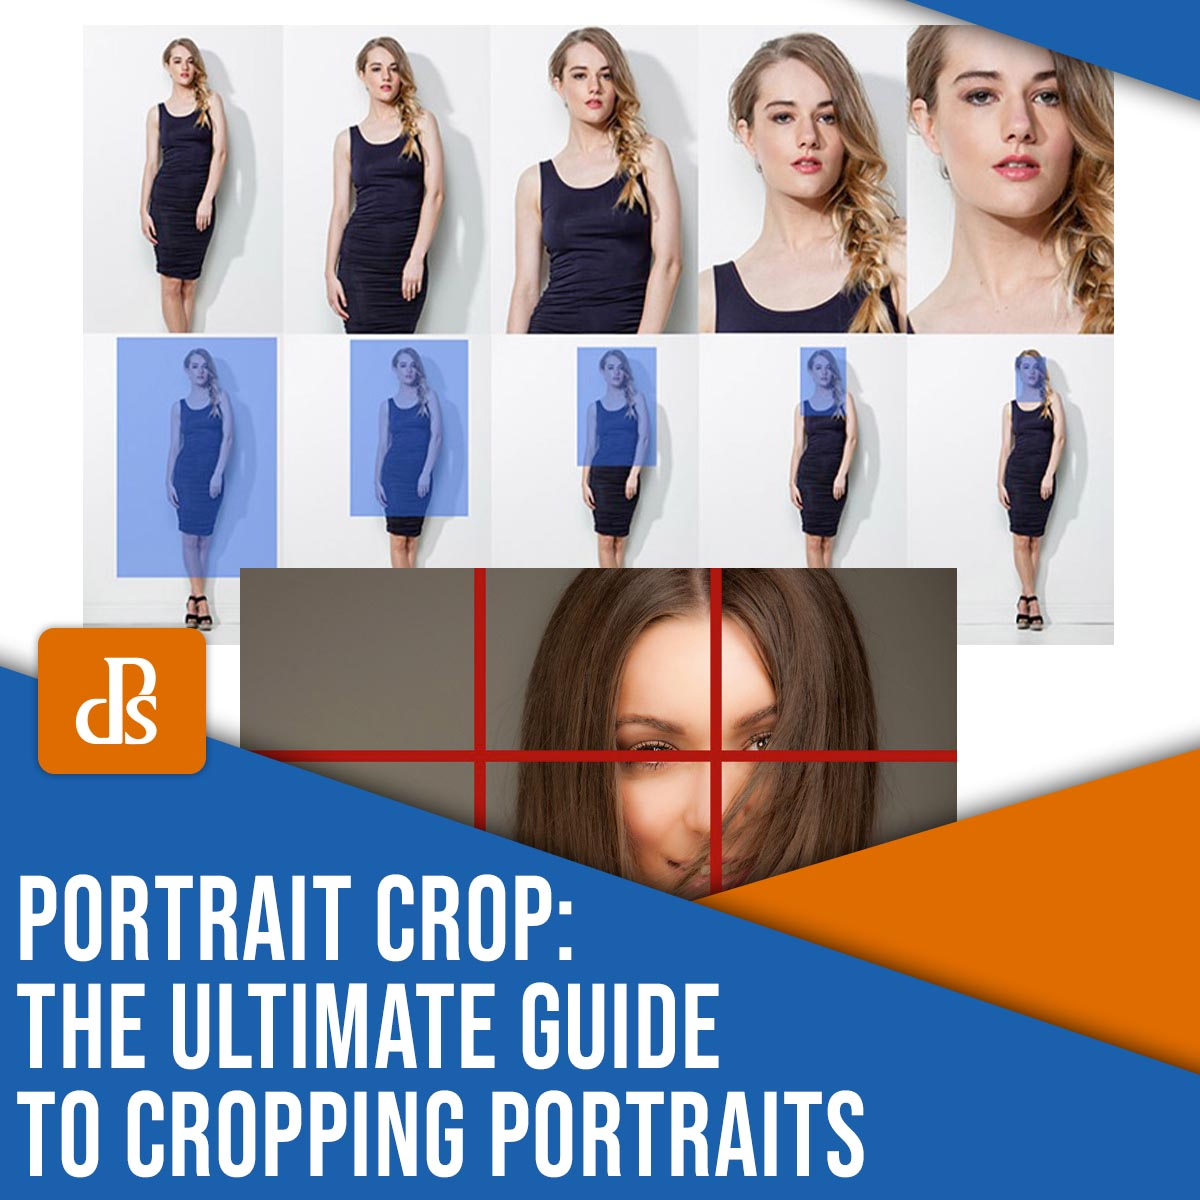 portrait crop: the ultimate guide to cropping portraits